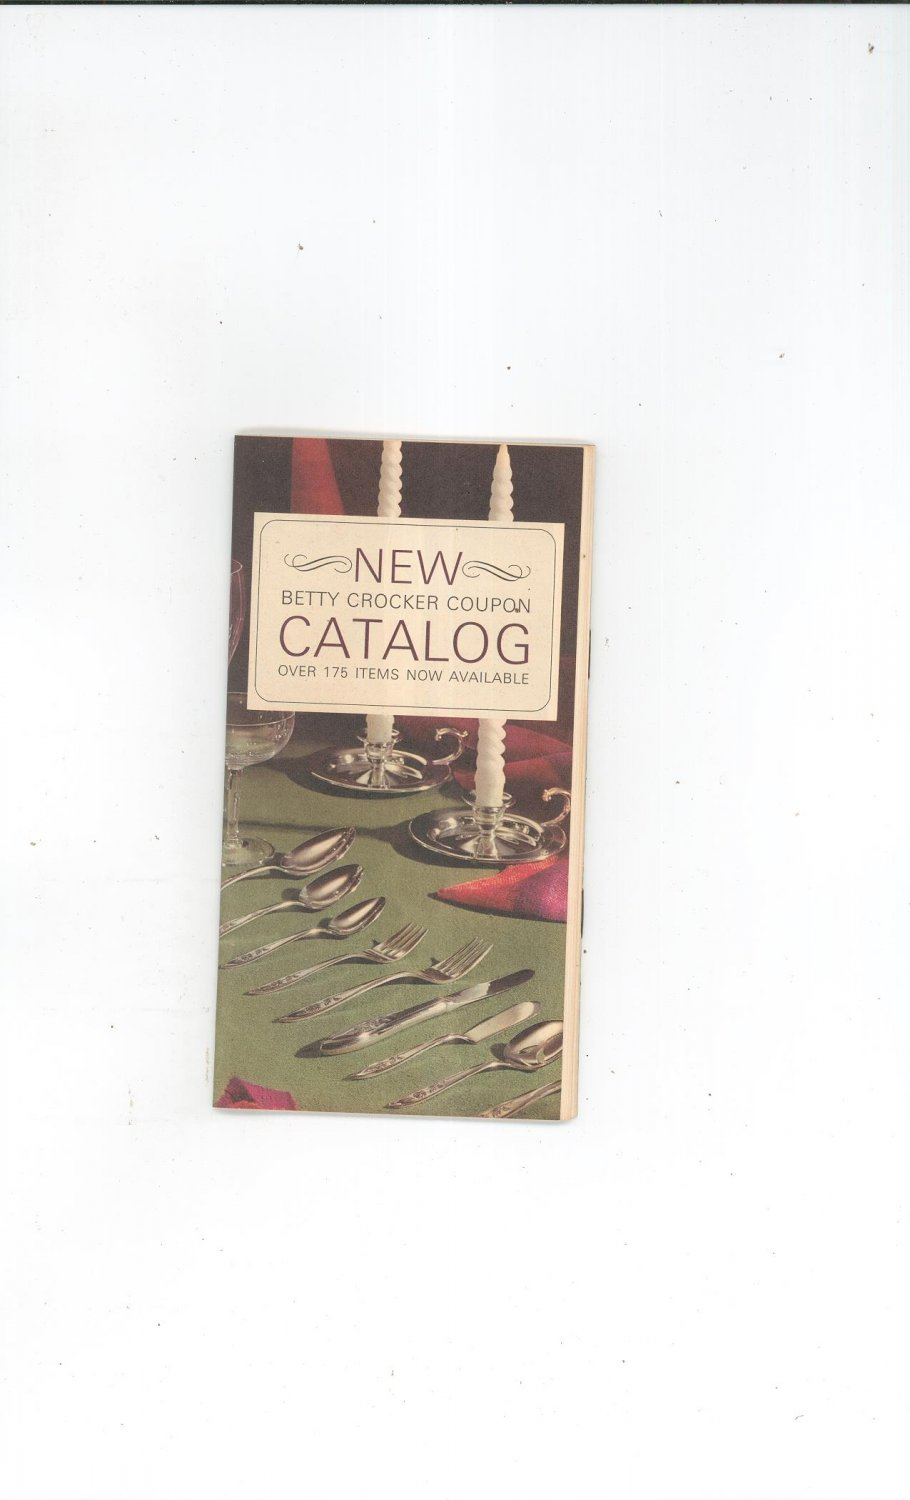 About Catalog Favorites. Catalog Favorites is a national retailer of unique gift items for all occasions. They have a huge selection of gift items, including jewelry, clothing, handbags, shoes, decorative home accents, practical gadgets, tools for the kitchen and bath, garden accessories, electronics, books, games, toys, DVD and CD entertainment, collectible figurines and personalized gifts.